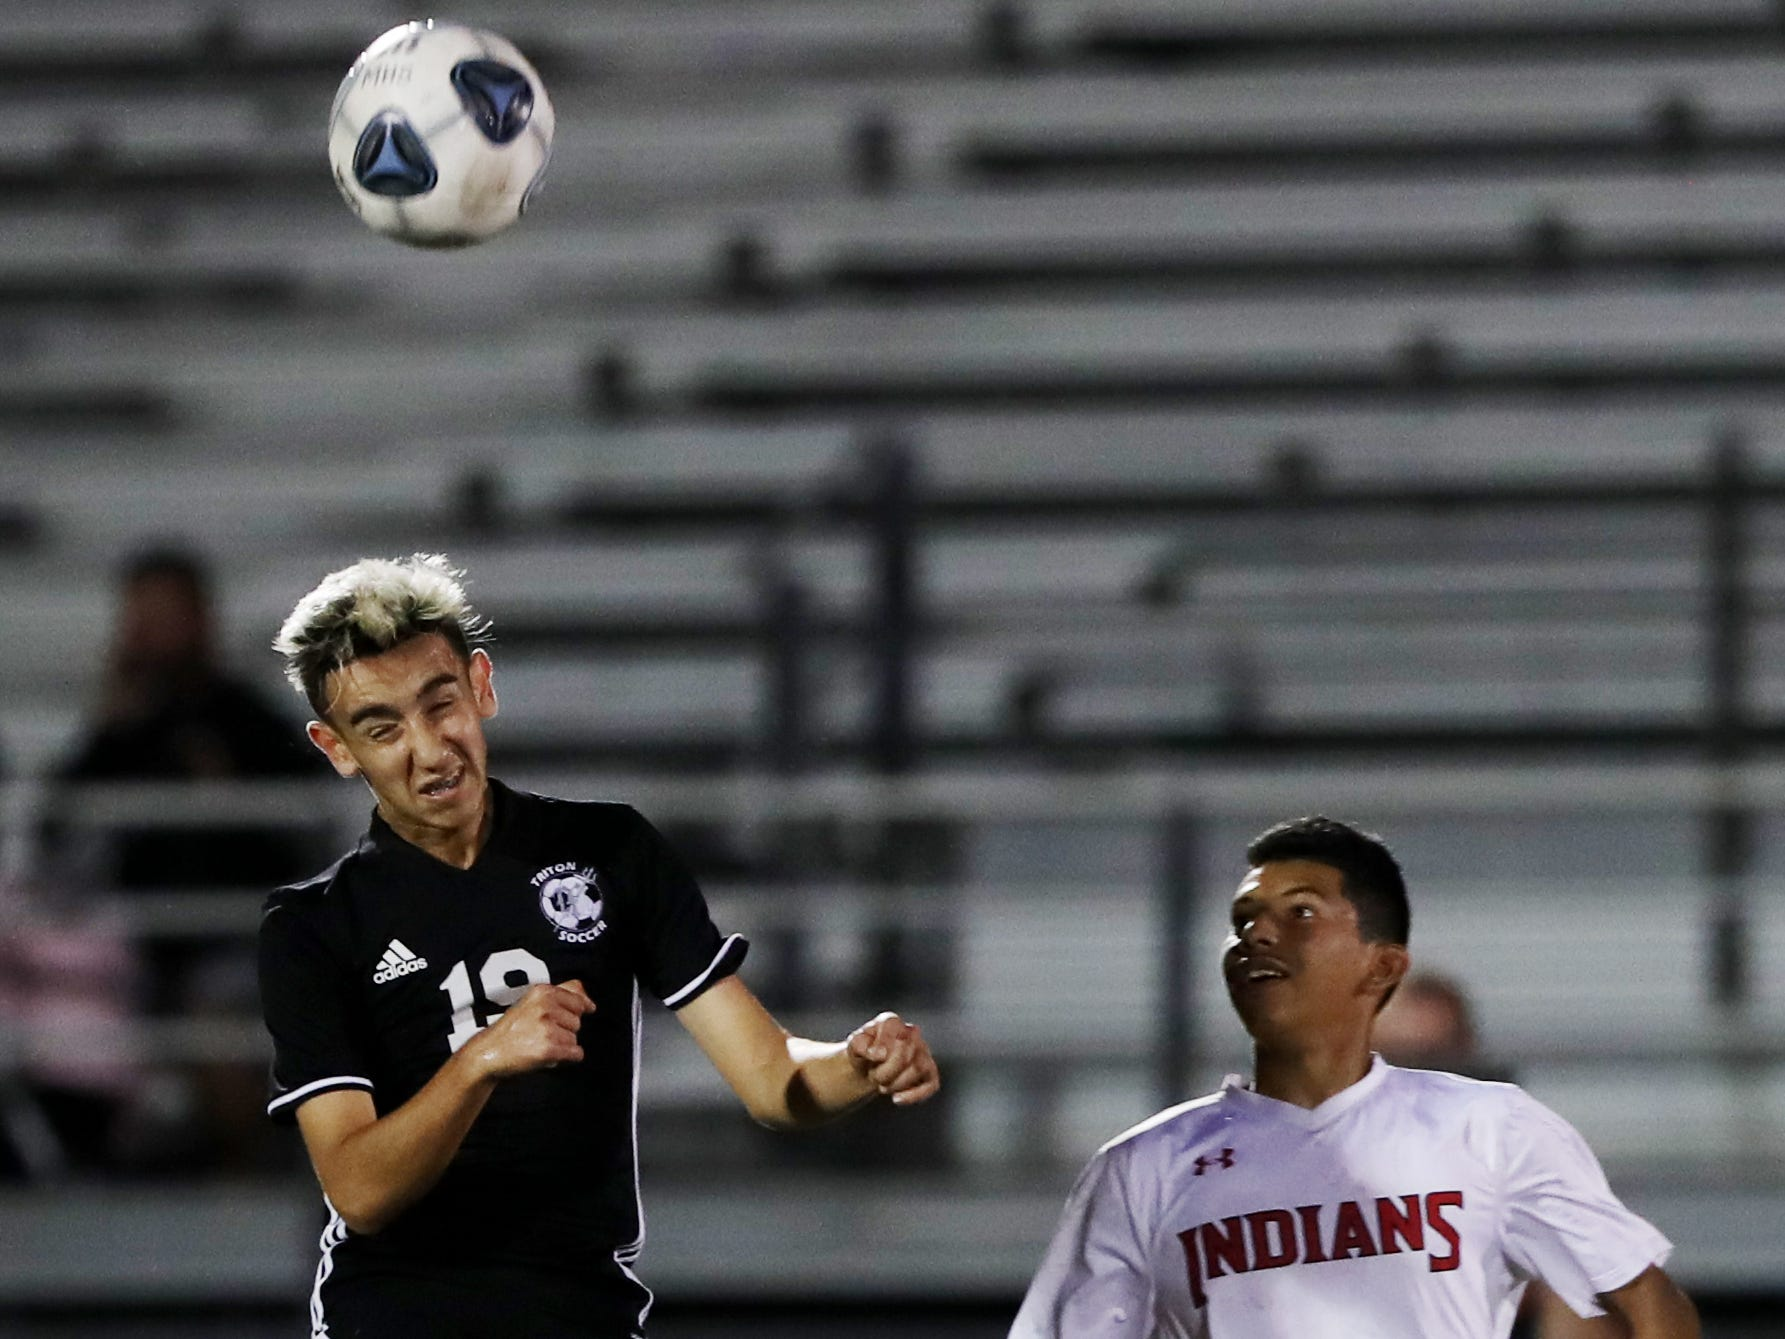 Mariner High School's Jason Arias fields a pass against Immokalee on Wednesday in the Class 3A regional quarterfinal. Mariner beat Immokalee 2-0.